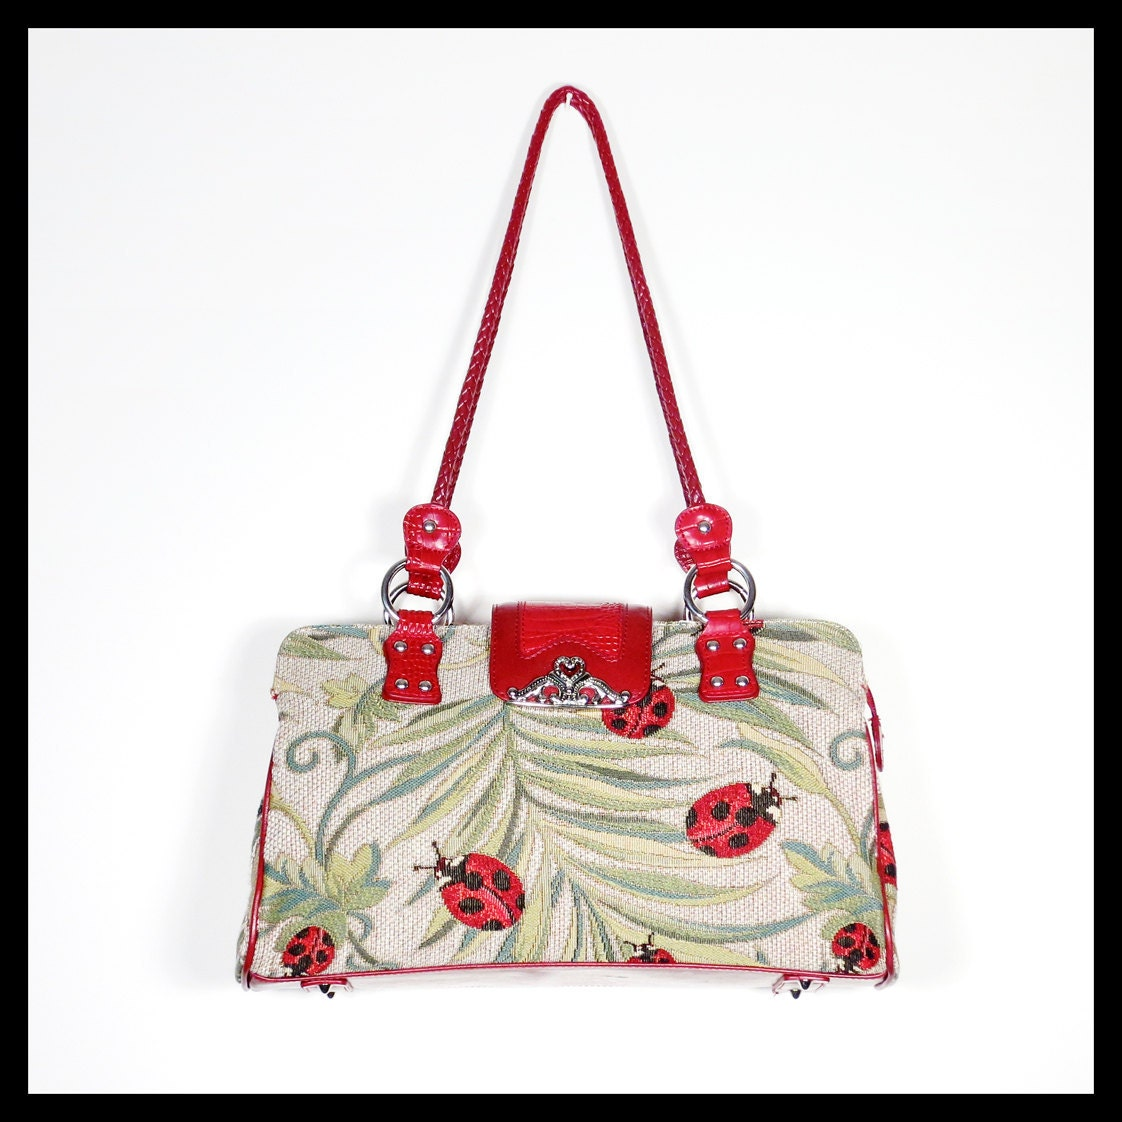 Ladybug Tapestry & Leather bag Marc Chantal by SalonDesMuses